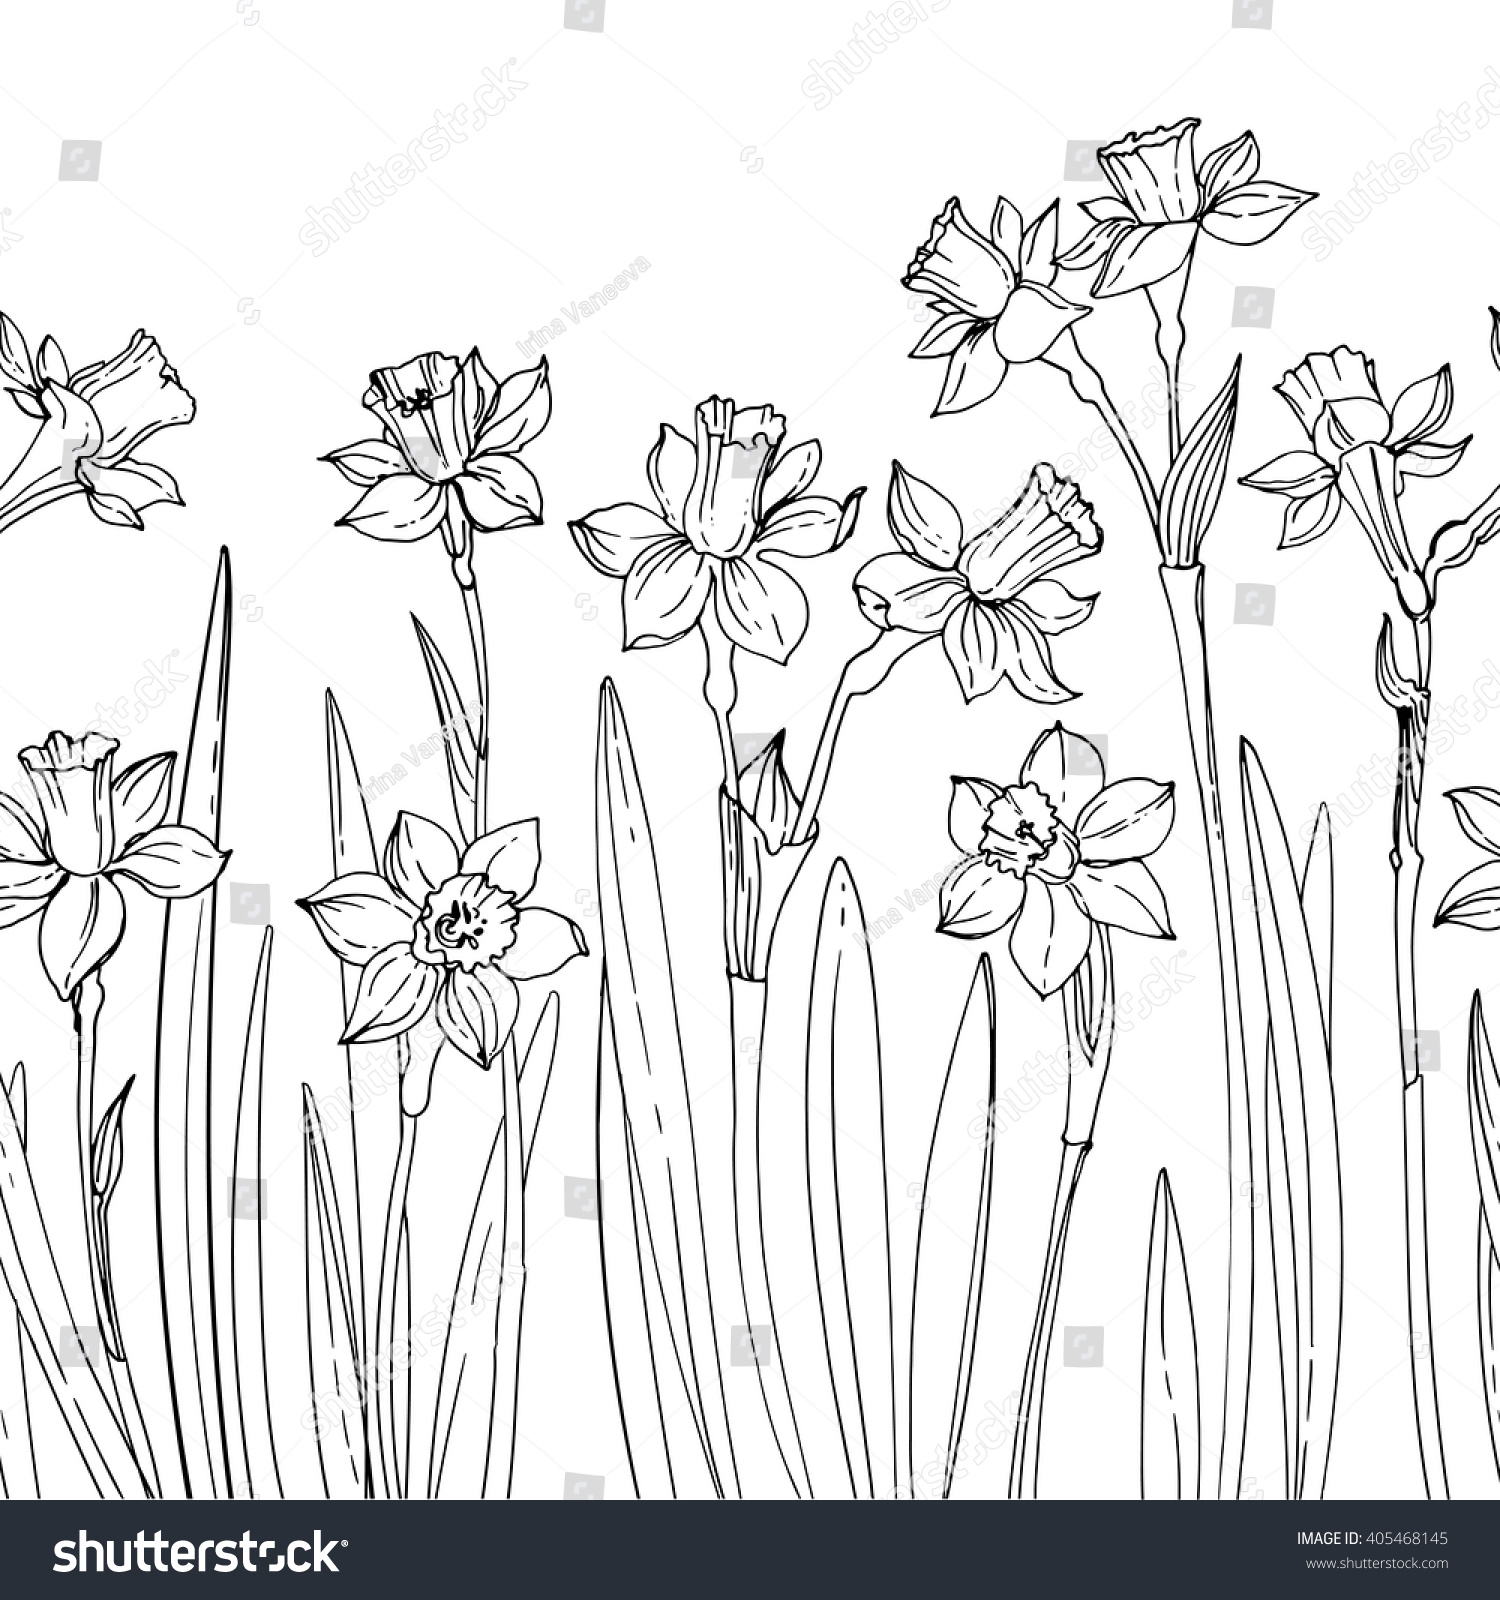 Pattern Of Vector Drawings Flowers Daffodils Line Drawn On A White Background Spring